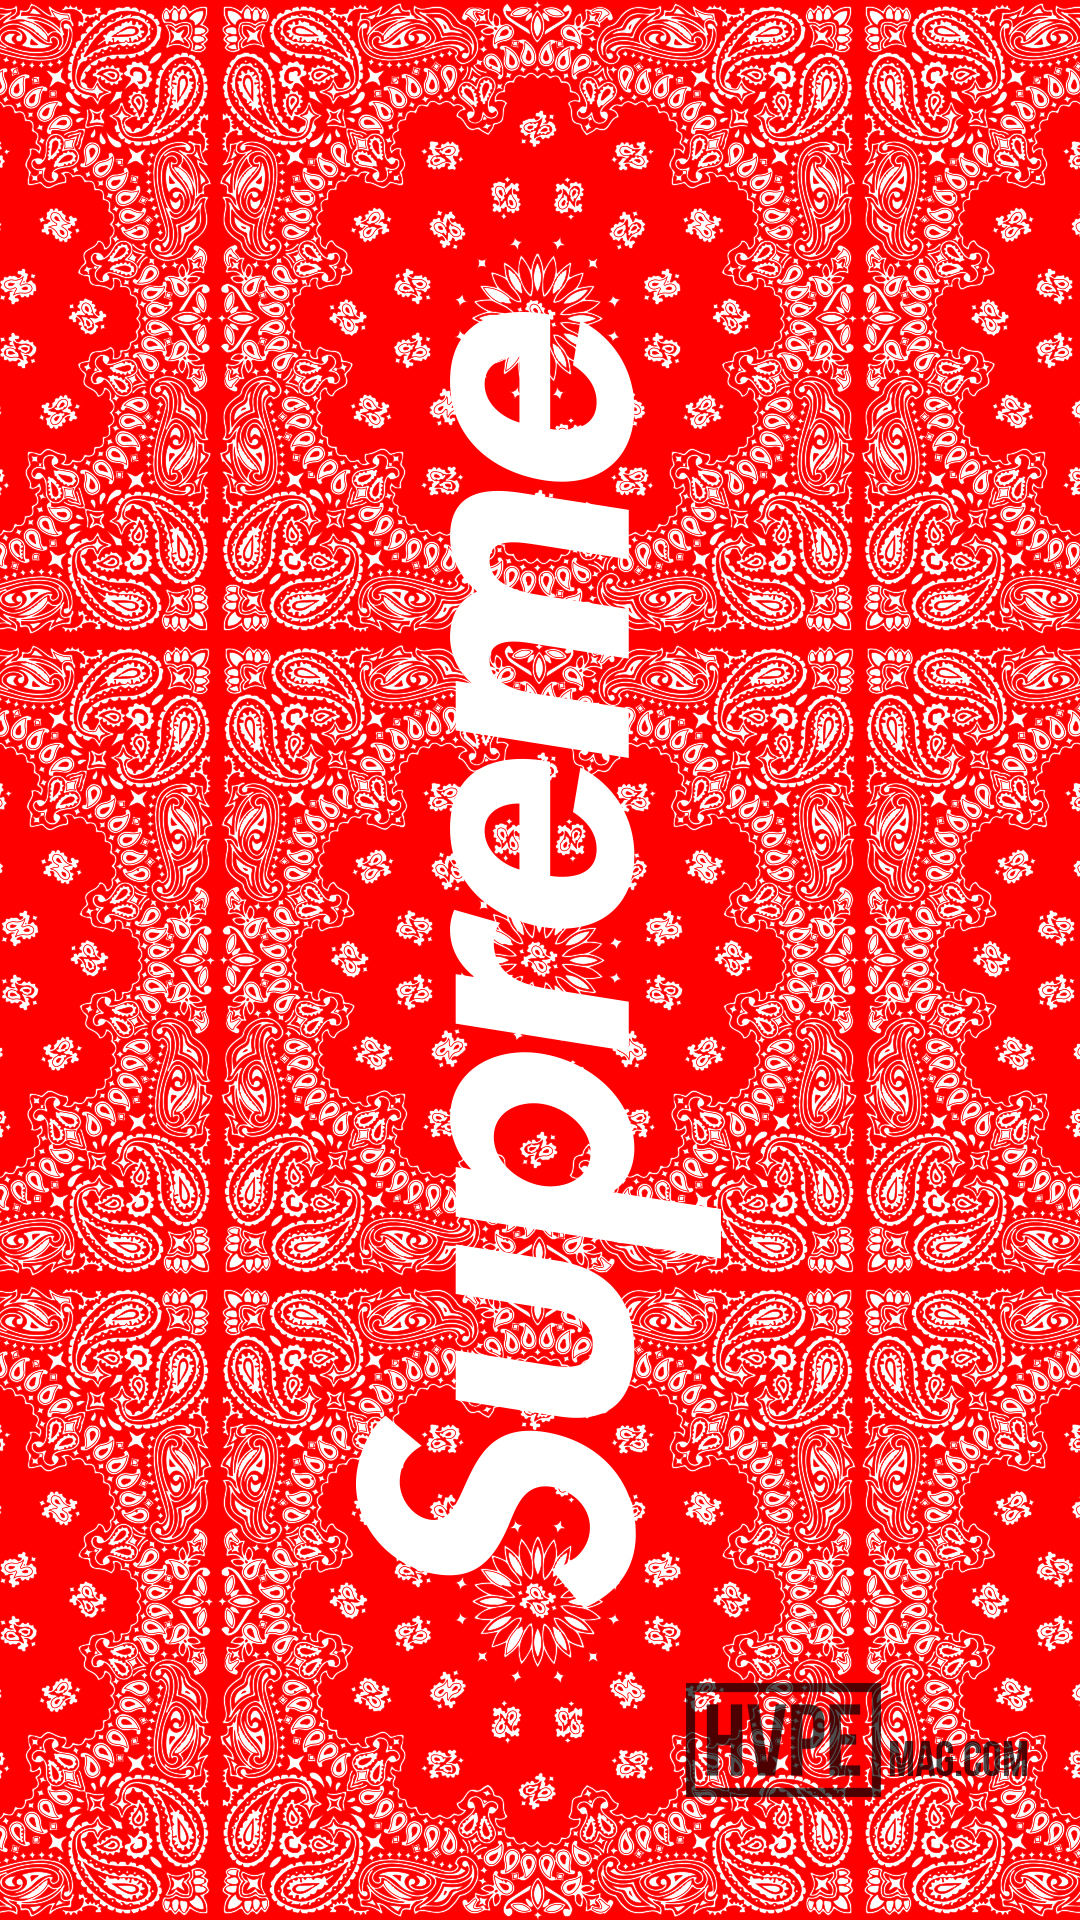 Red Bandana Wallpaper for Iphone